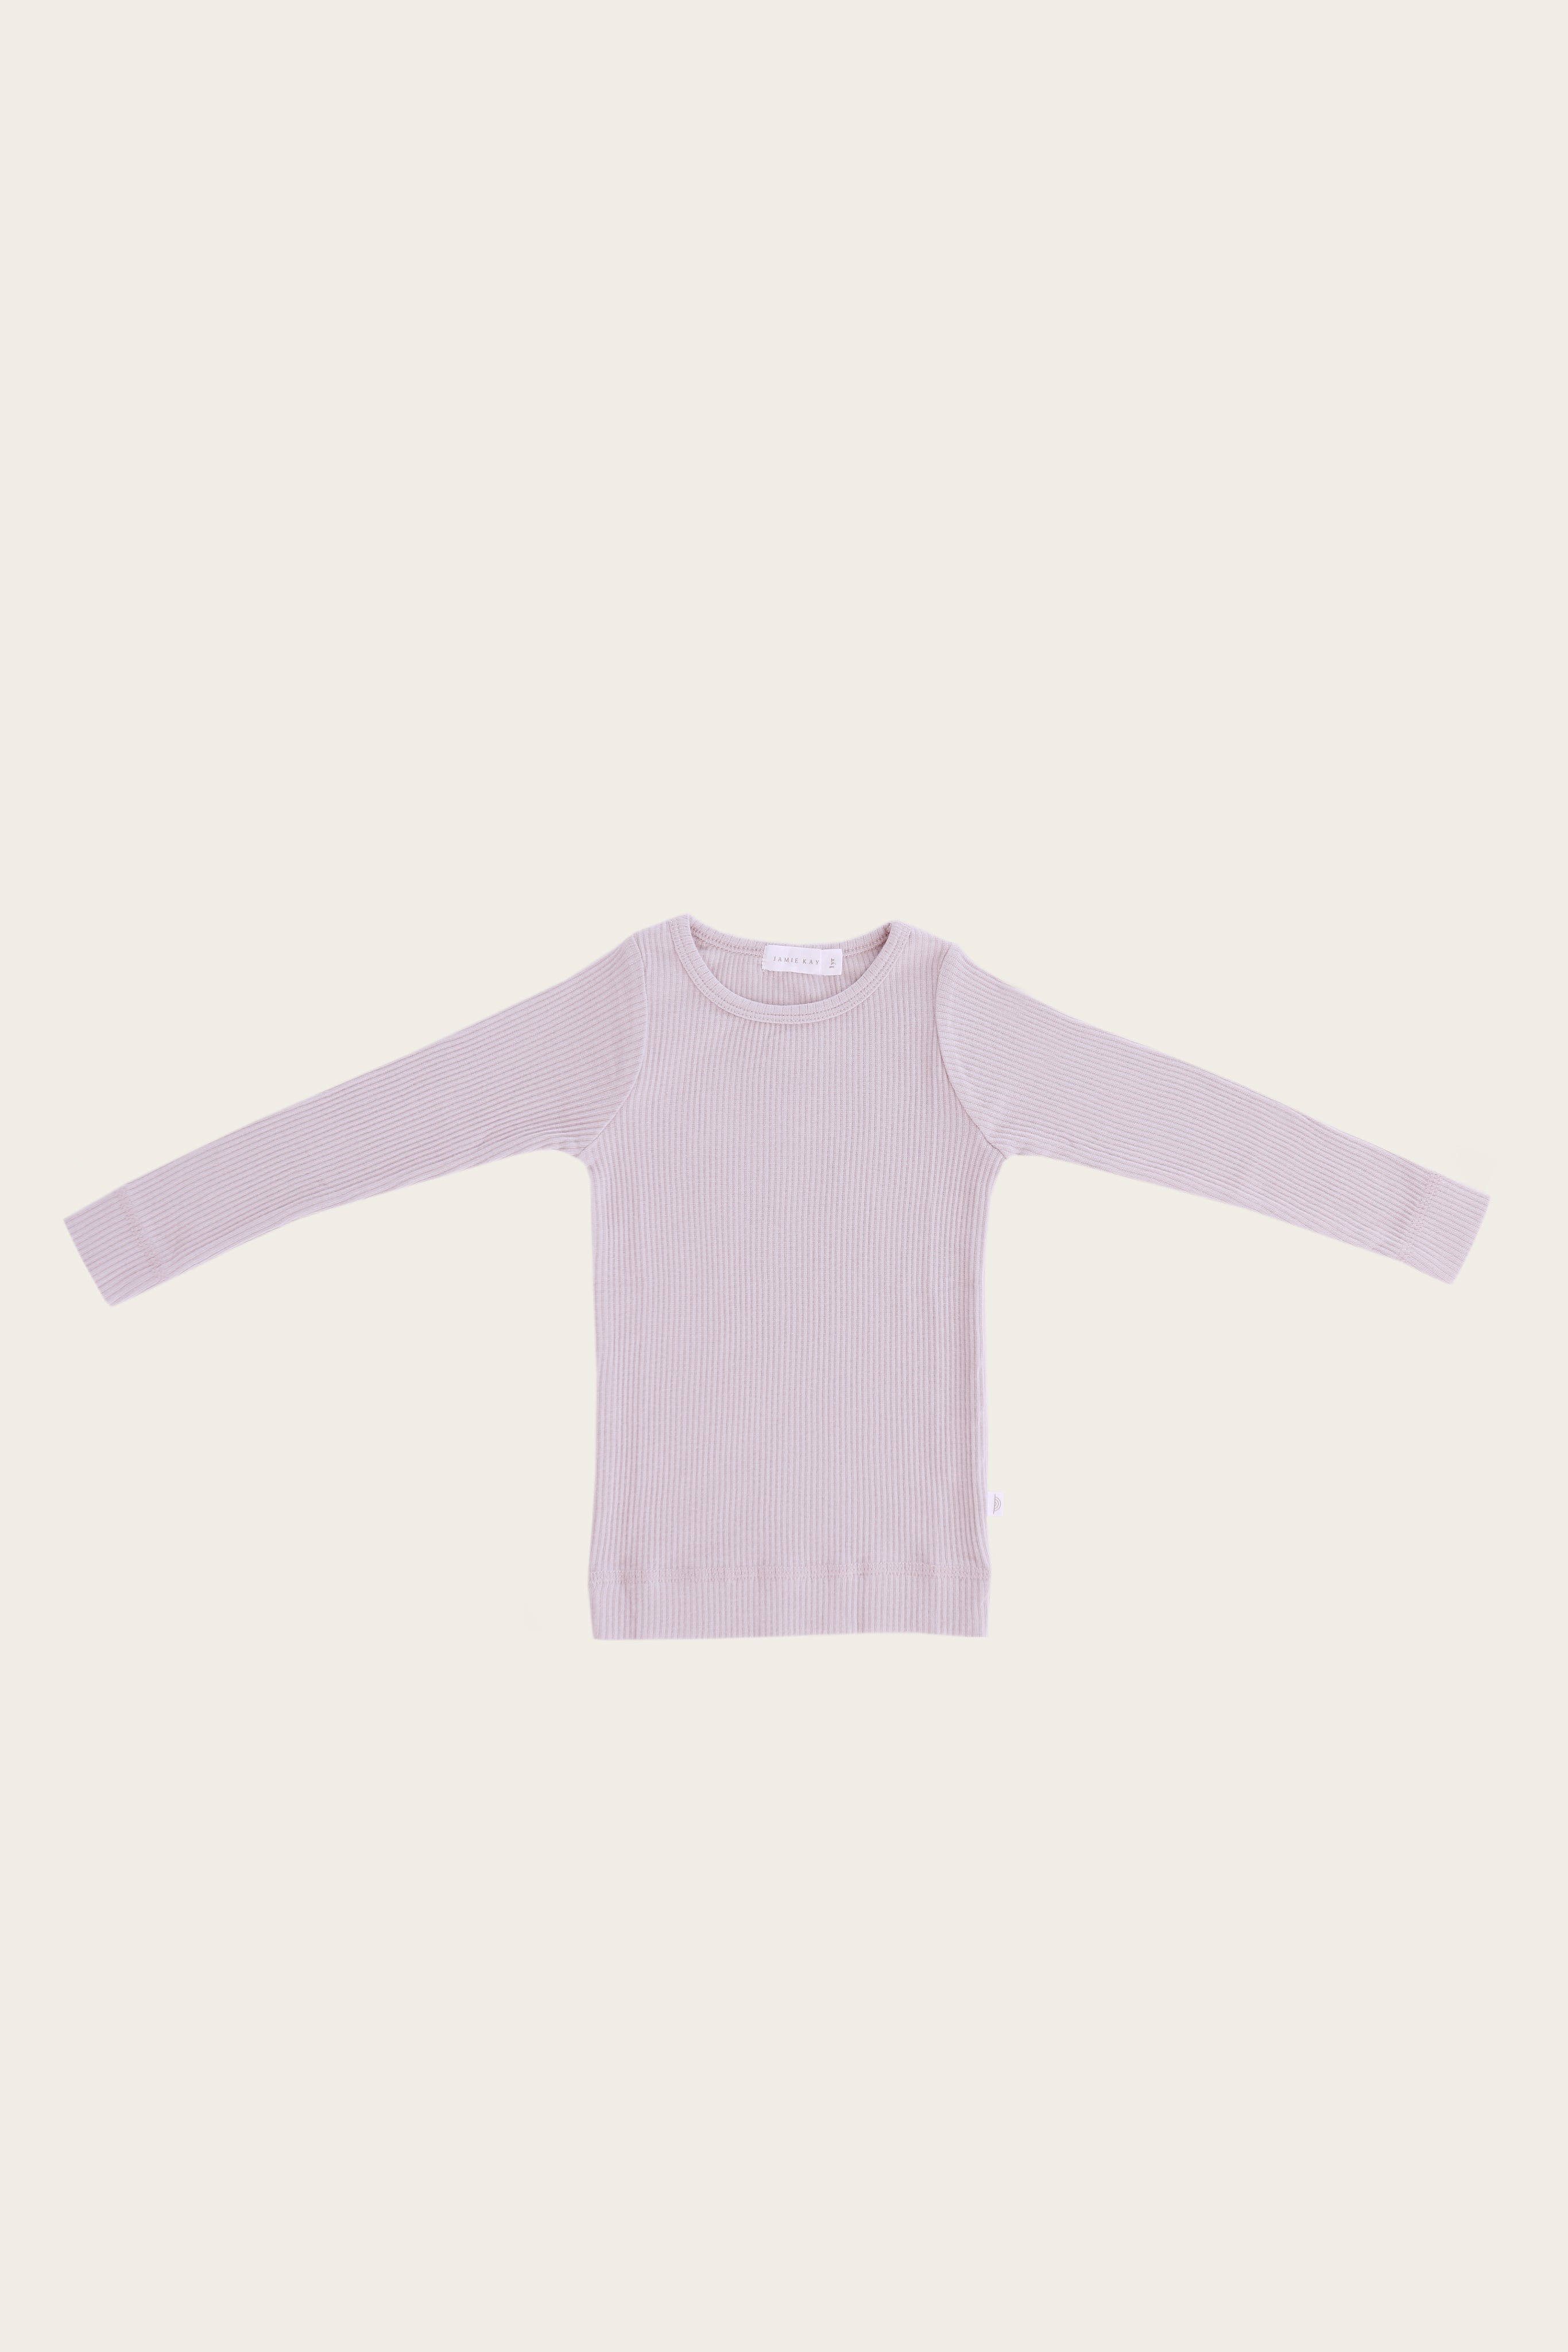 Organic Essential Long Sleeve Top - Violet Ice